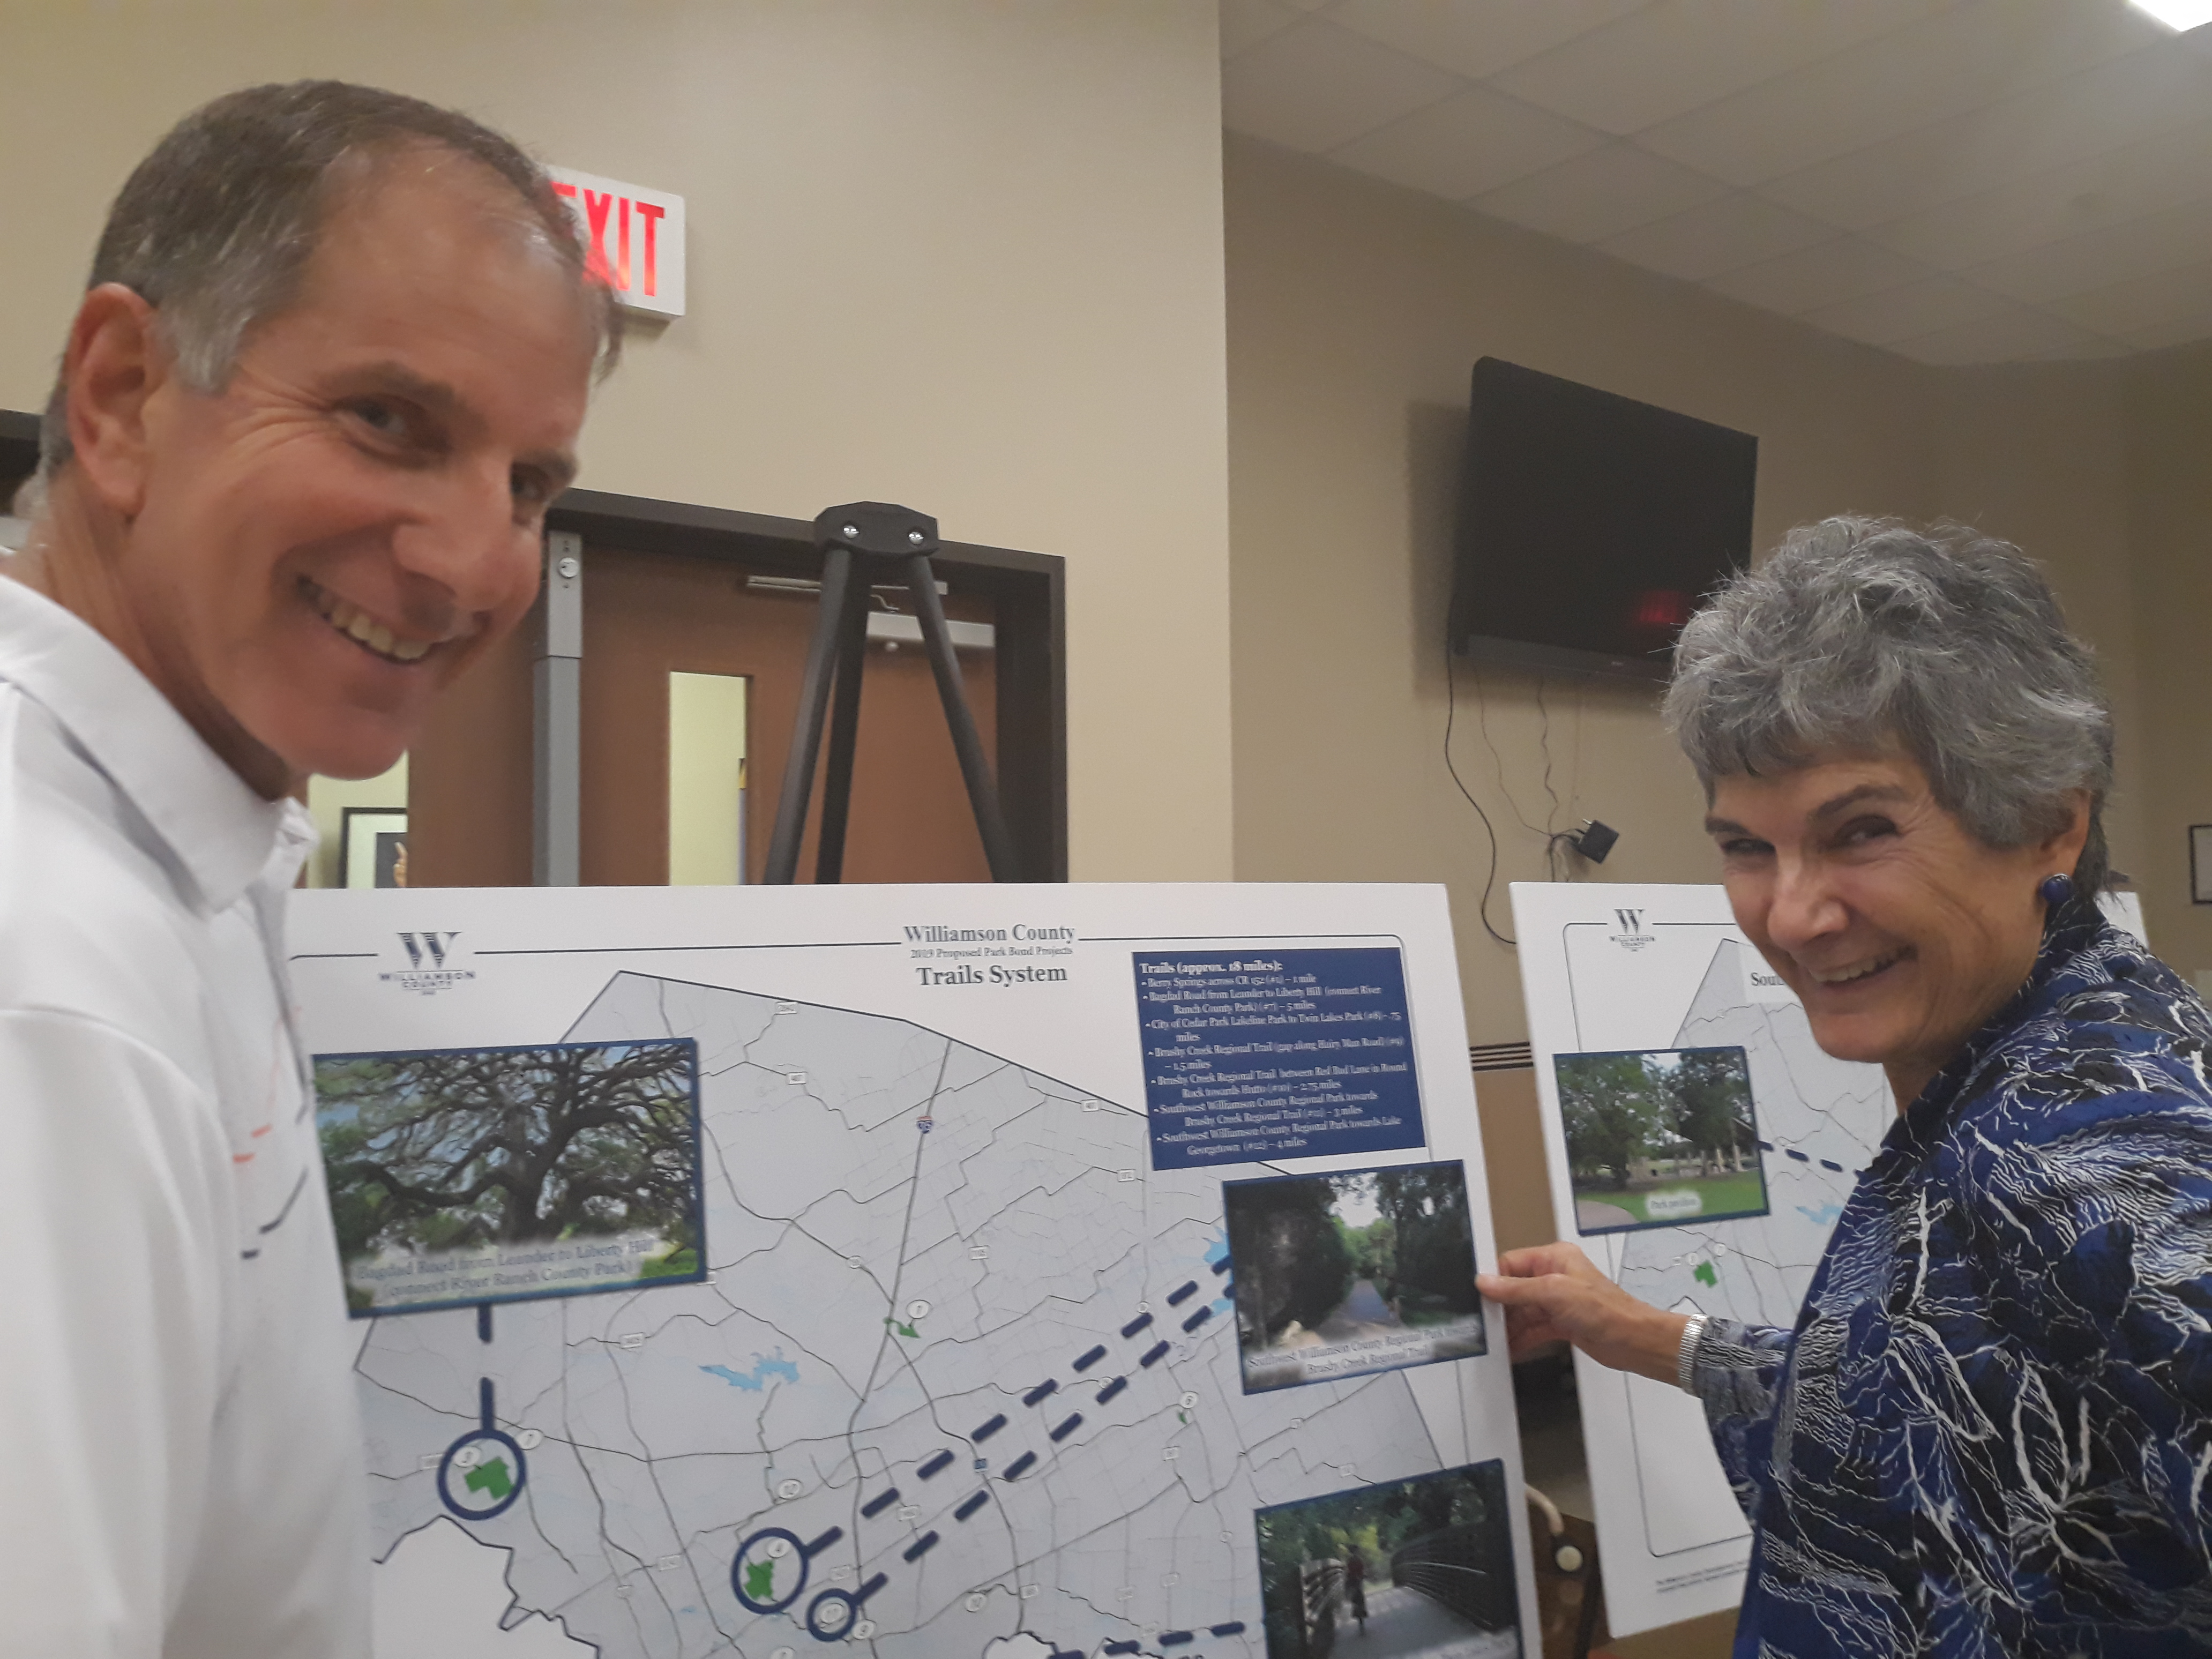 Commissioner Cook and Sr. Dir. of Wilco Parks & Recreation Russell Fishbeck discuss the impact of the road bonds shown on the chart.